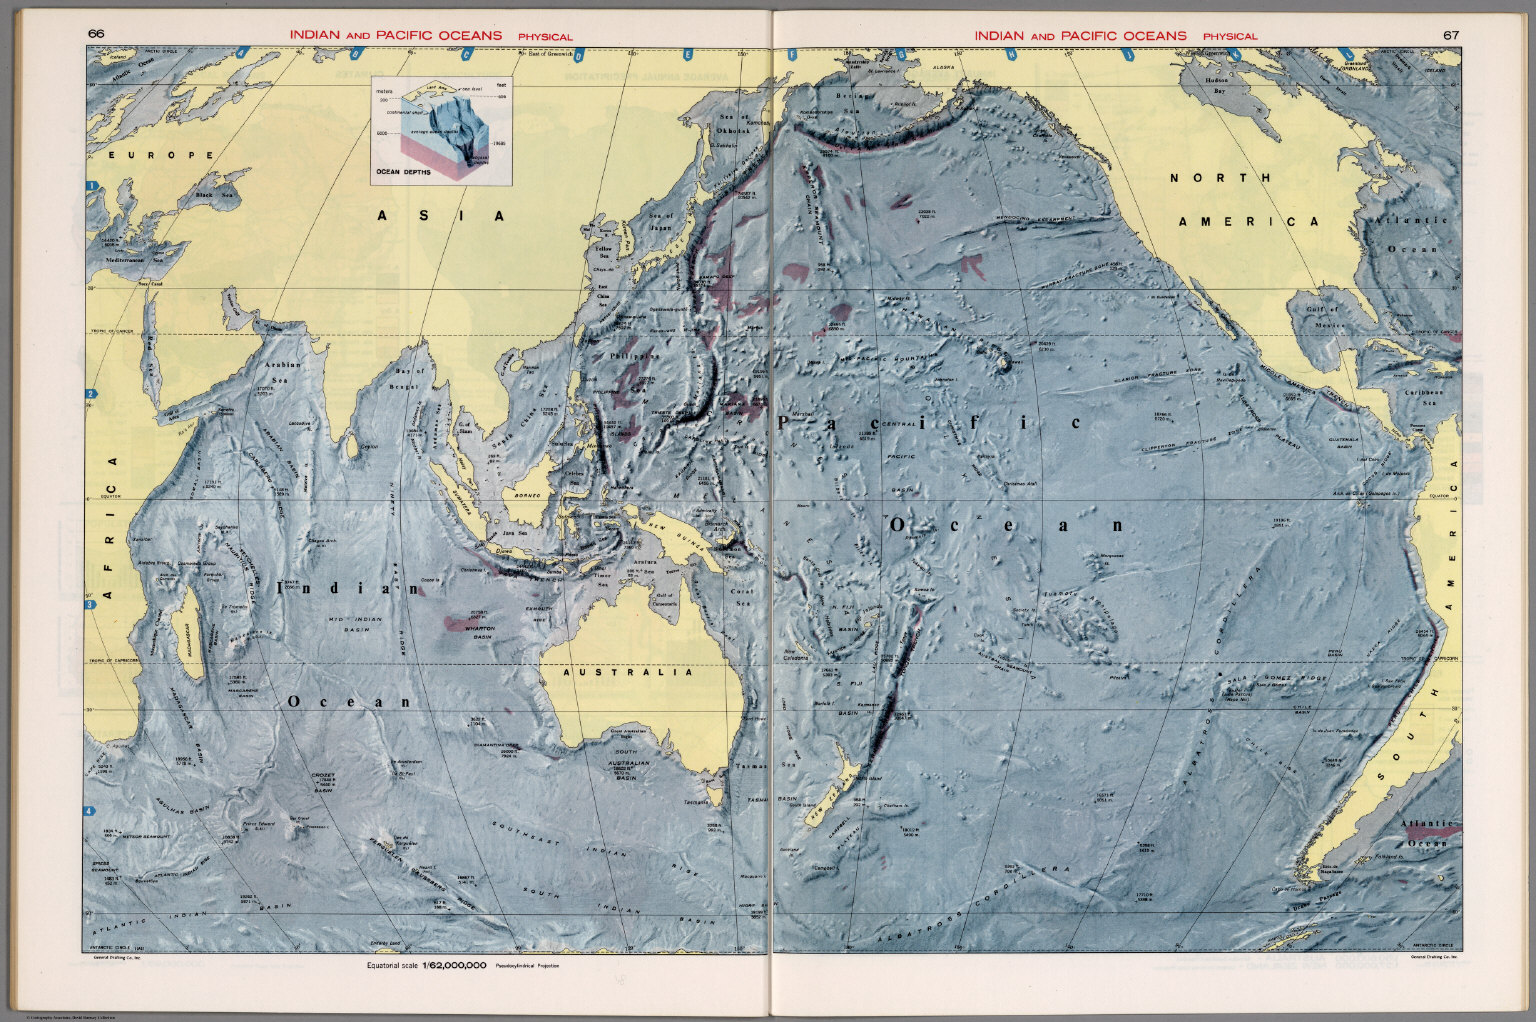 Indian and Pacific Oceans Physical David Rumsey Historical Map